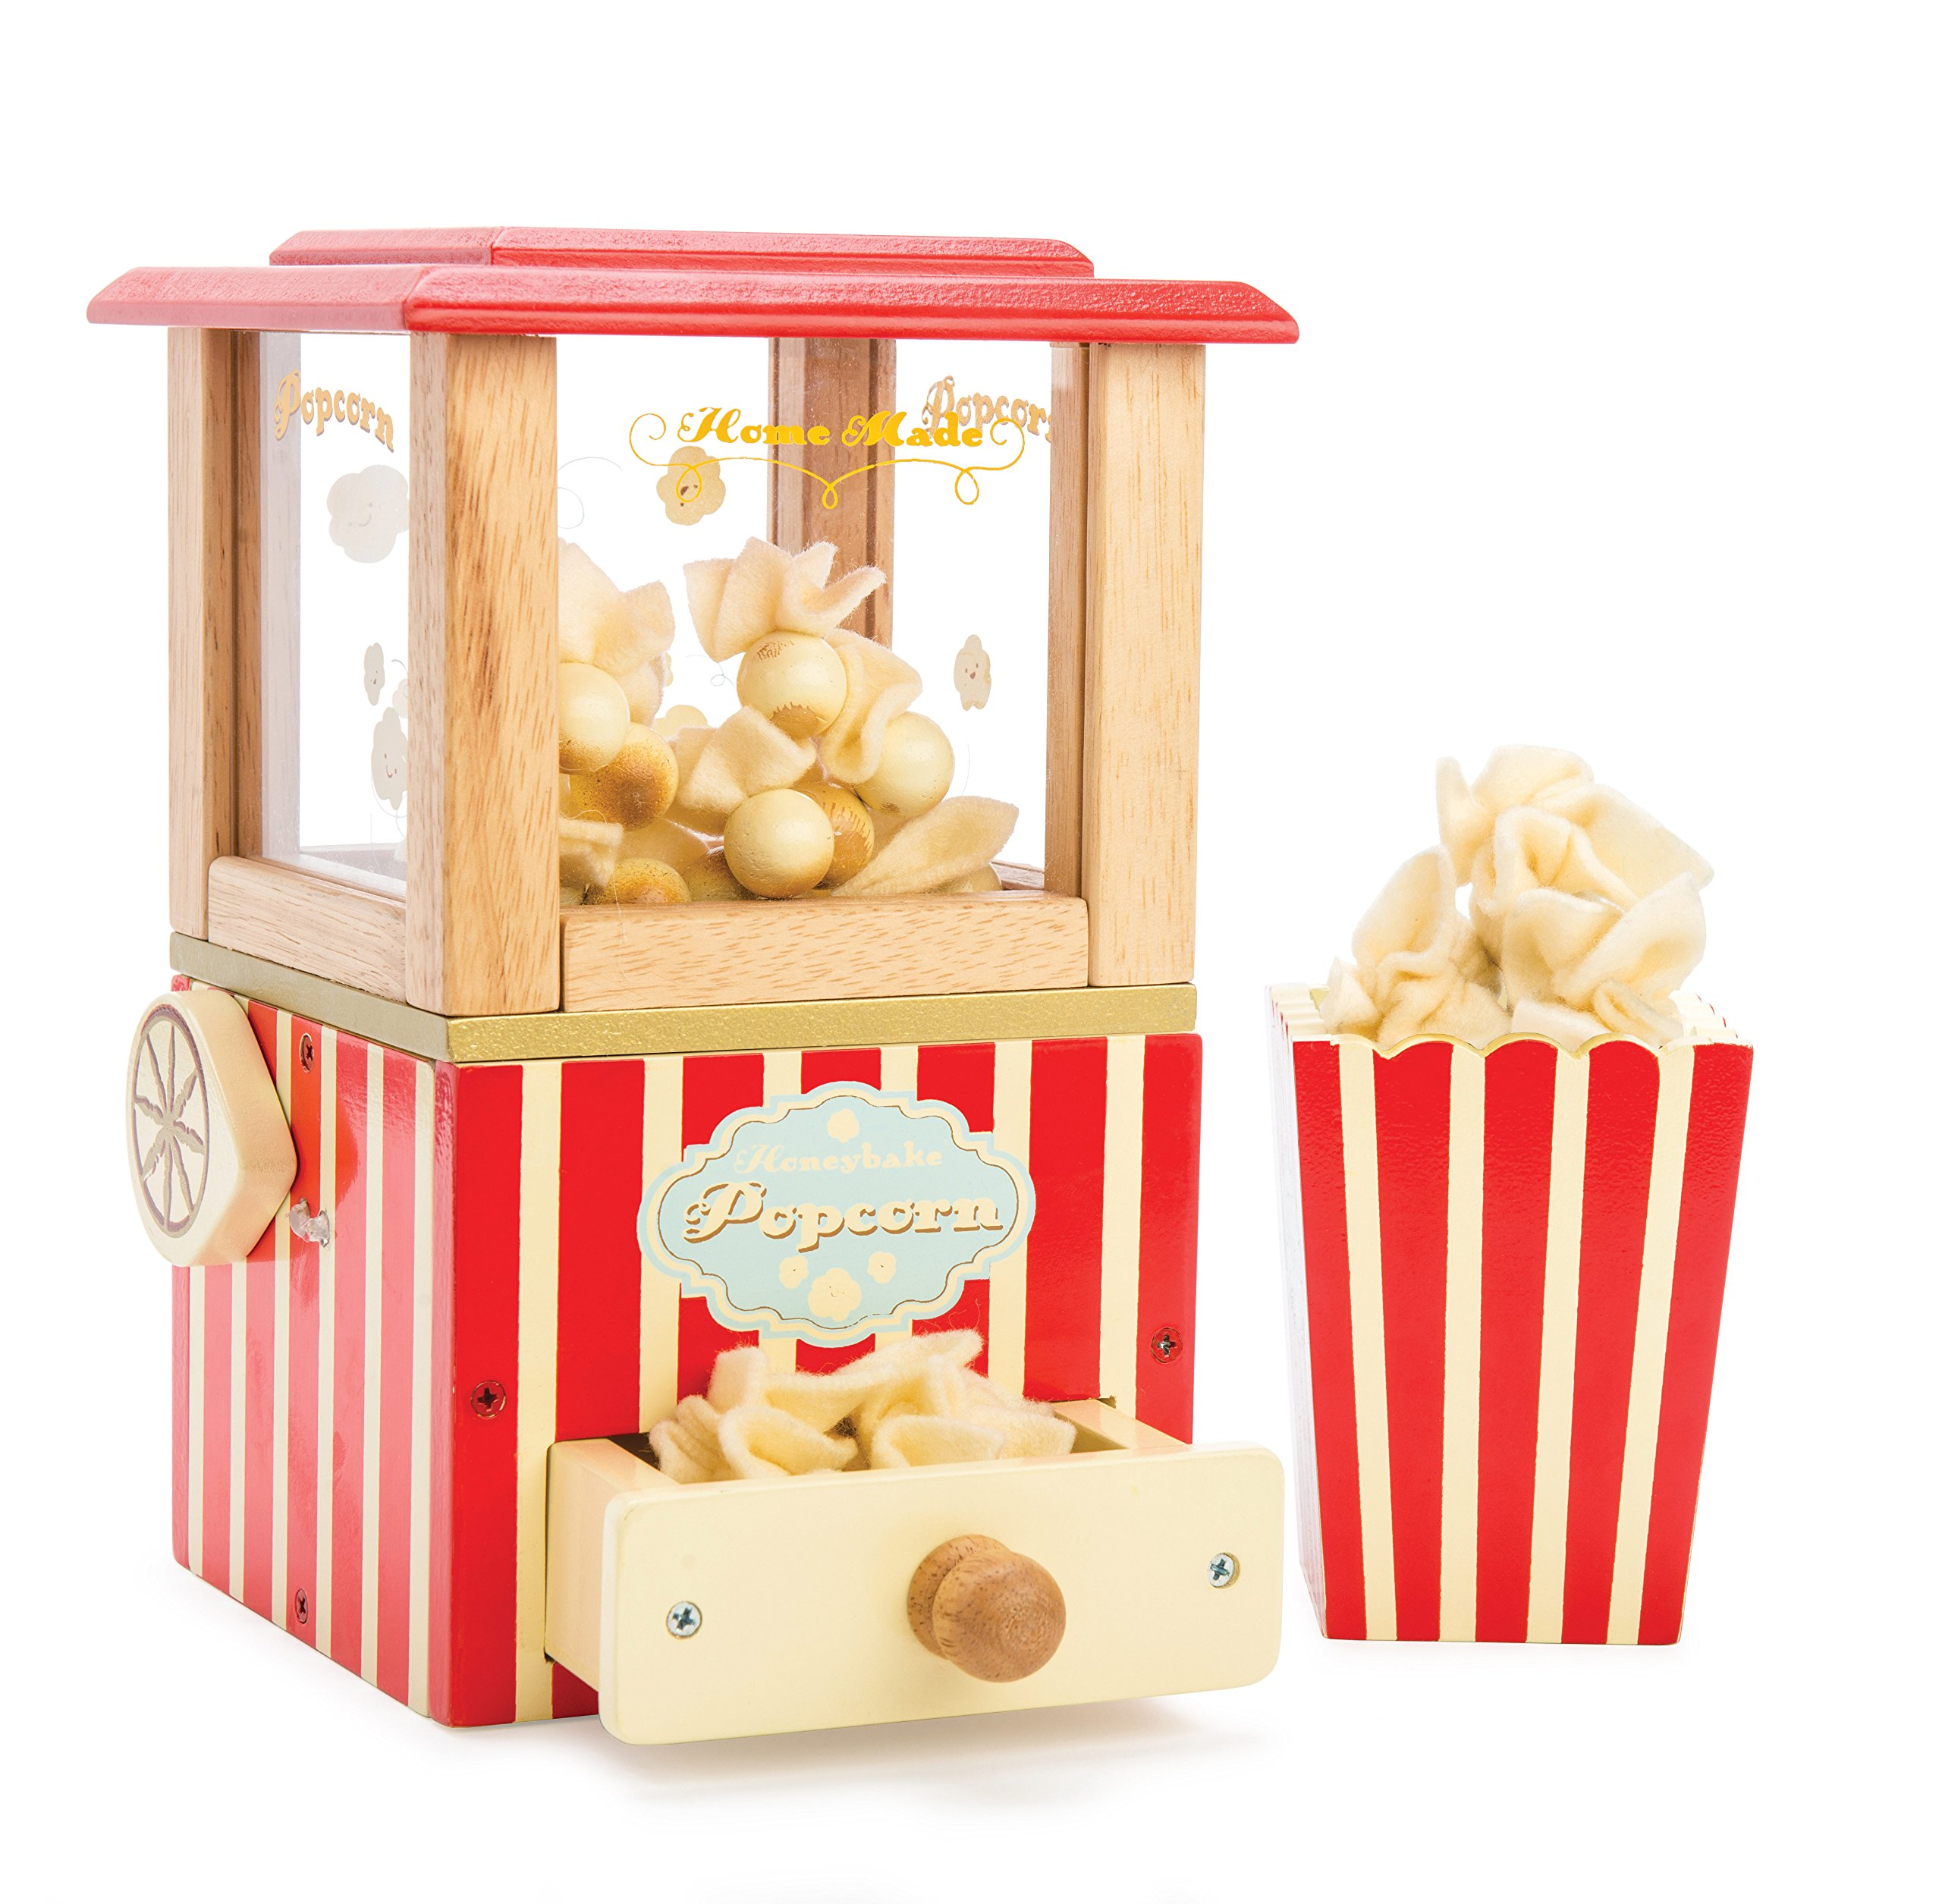 Le Toy Van Honeybake Collection Popcorn Machine Set Premium Wooden Toys for Kids Ages 3 Years & Up by Le Toy Van